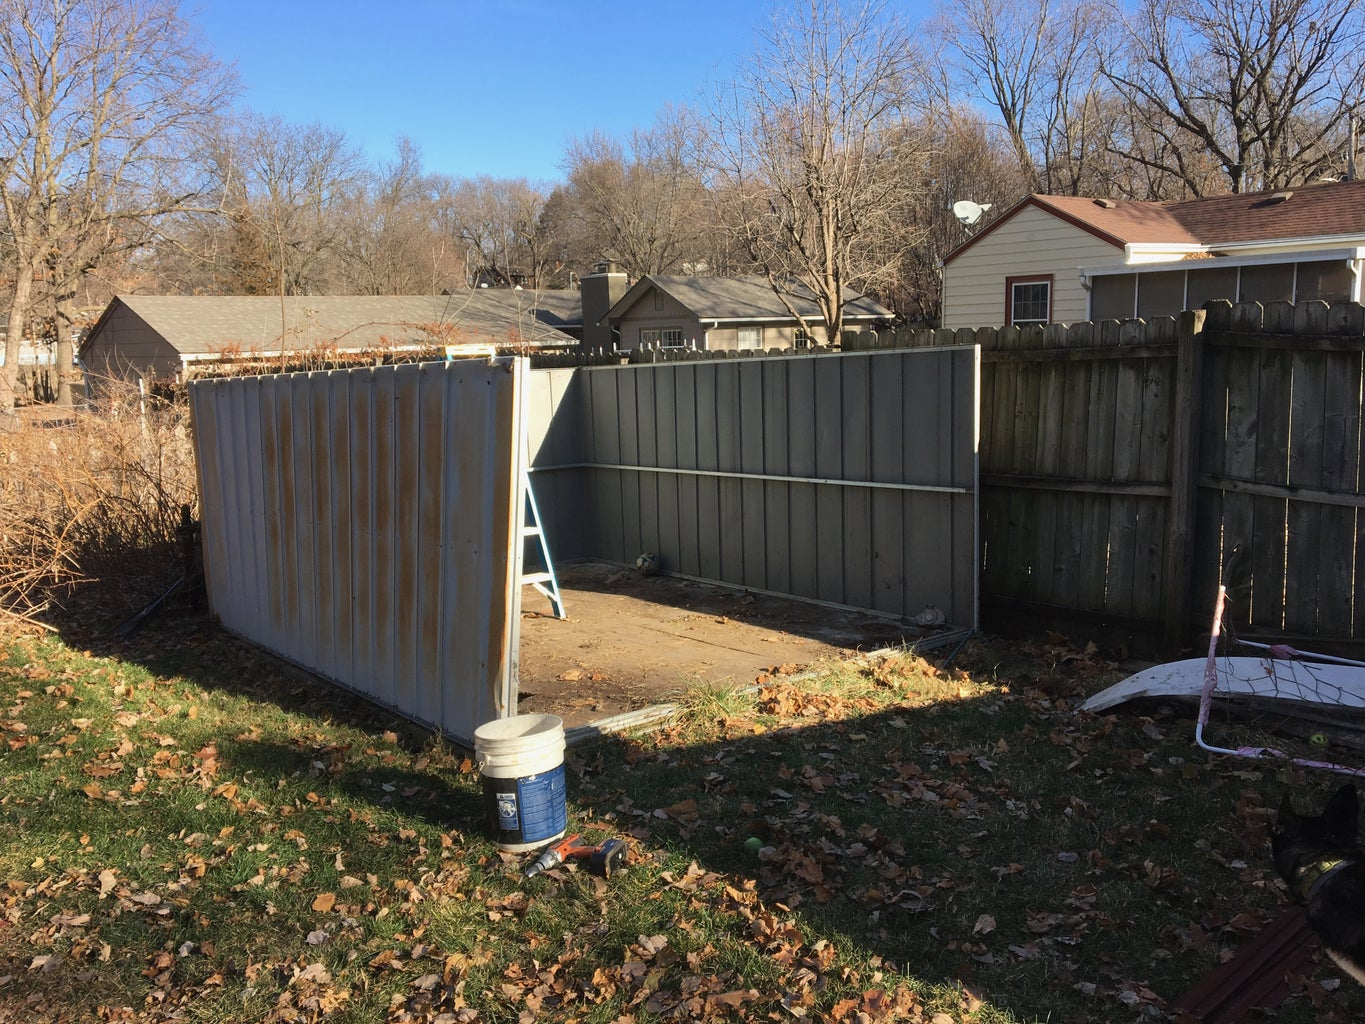 Step 1: Take the Old Shed Apart